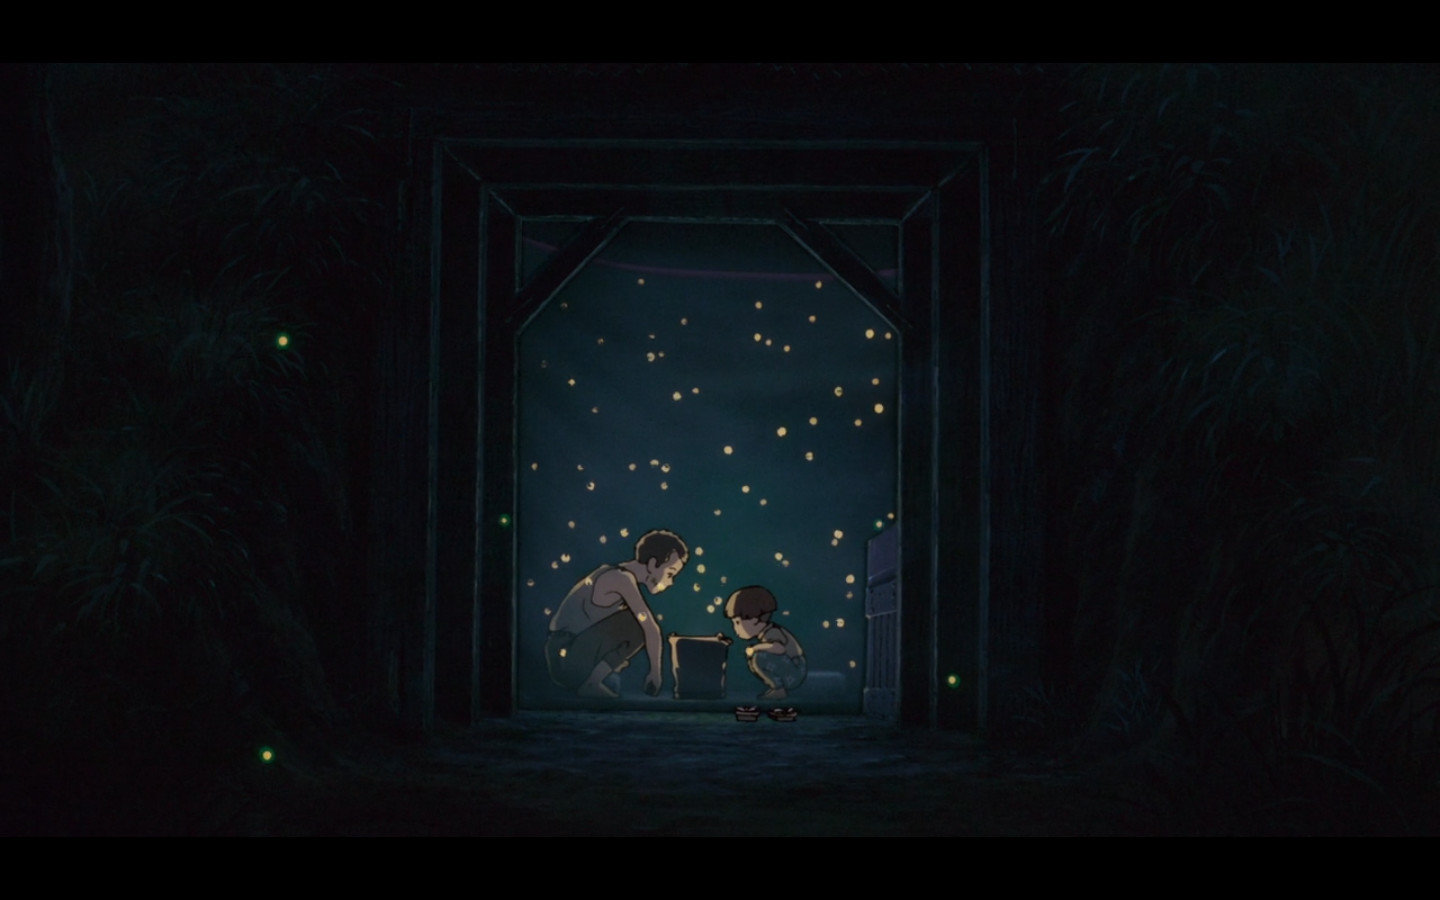 Best Grave Of The Fireflies wallpaper ID:241877 for High Resolution hd 1440x900 computer